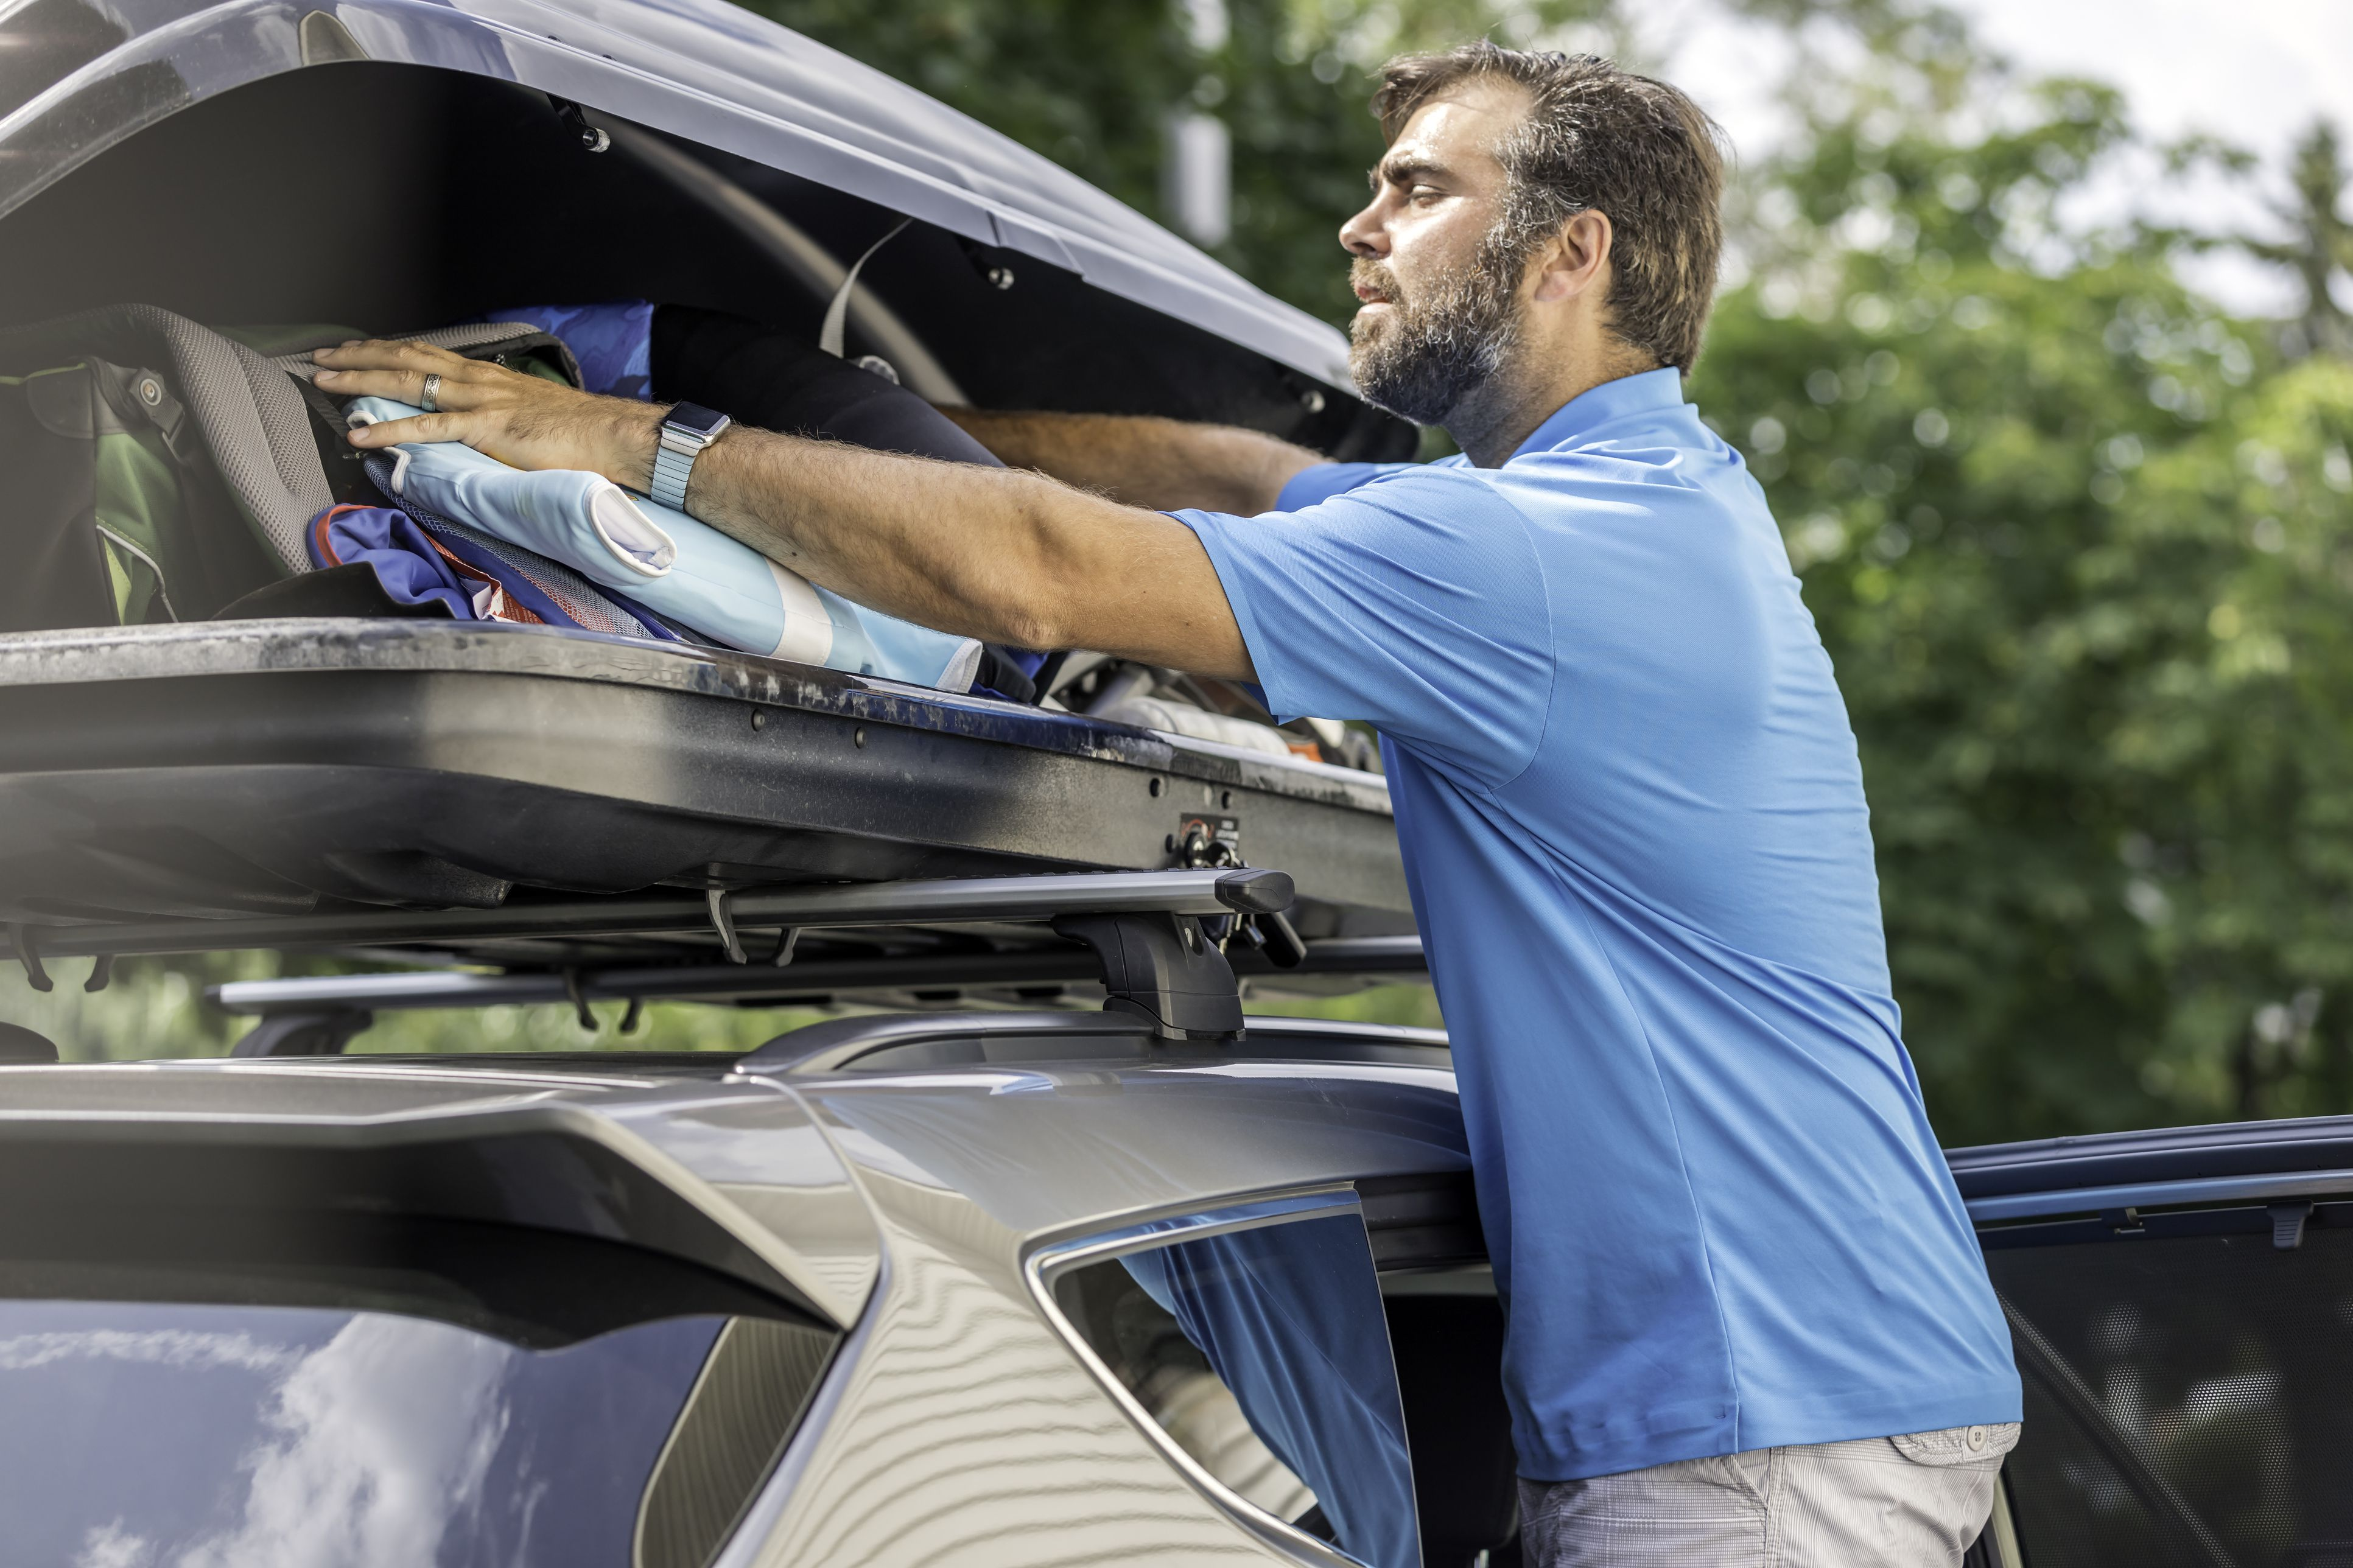 Men Filling Cargo Box Container on Roof Rack for Vacations or Camping